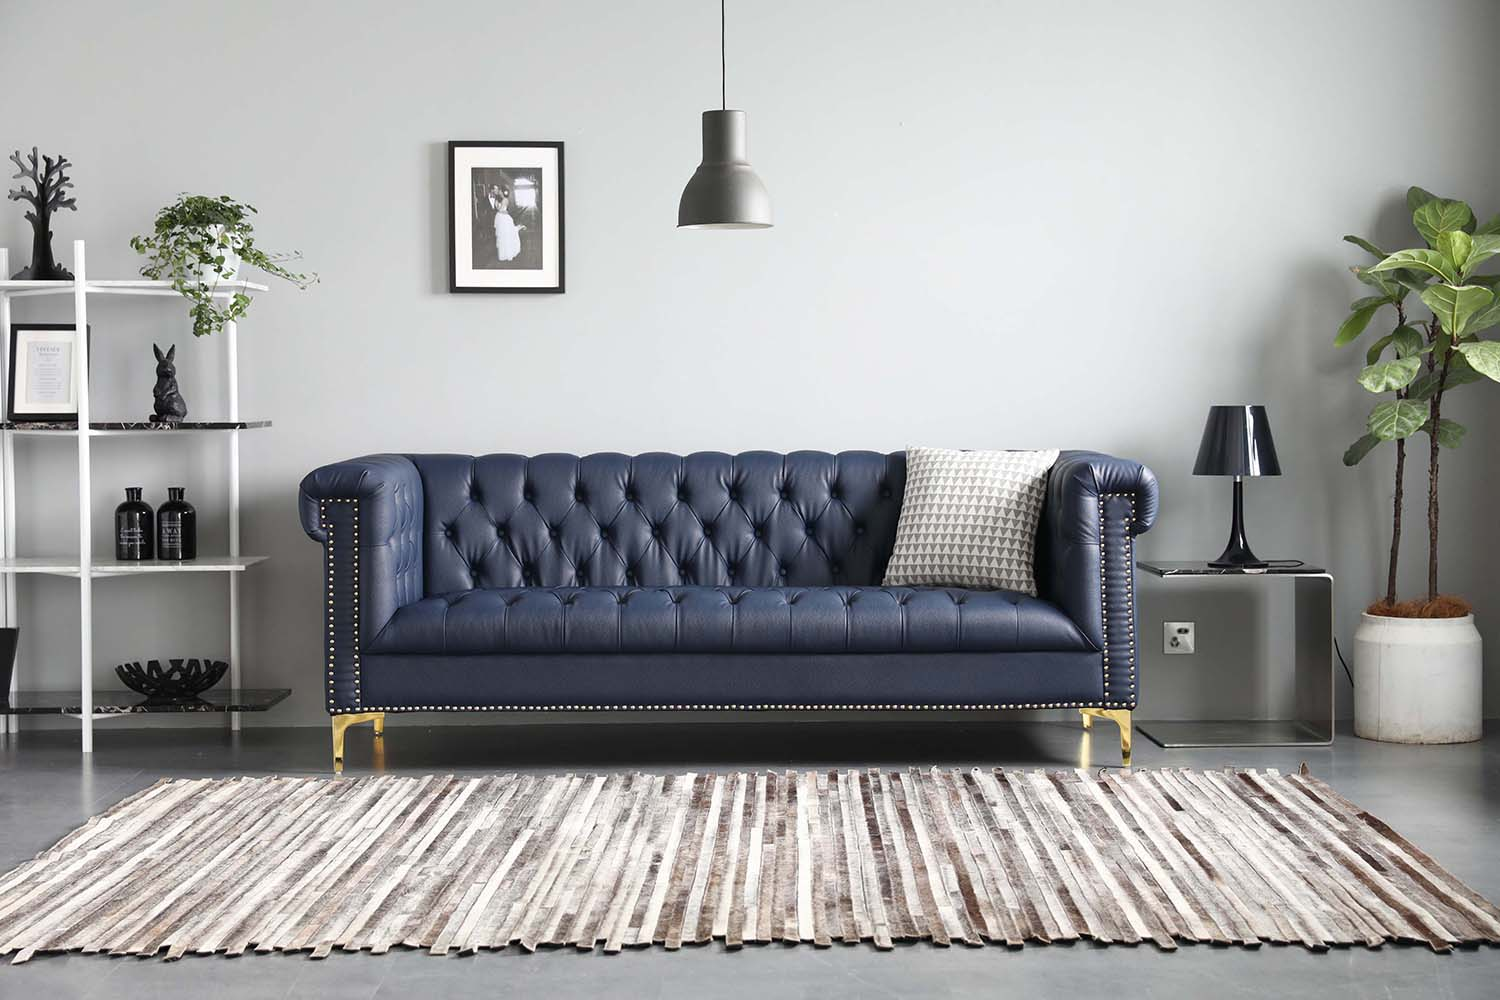 squarerooms bed and basics blue chesterfield leather sofa couch living room